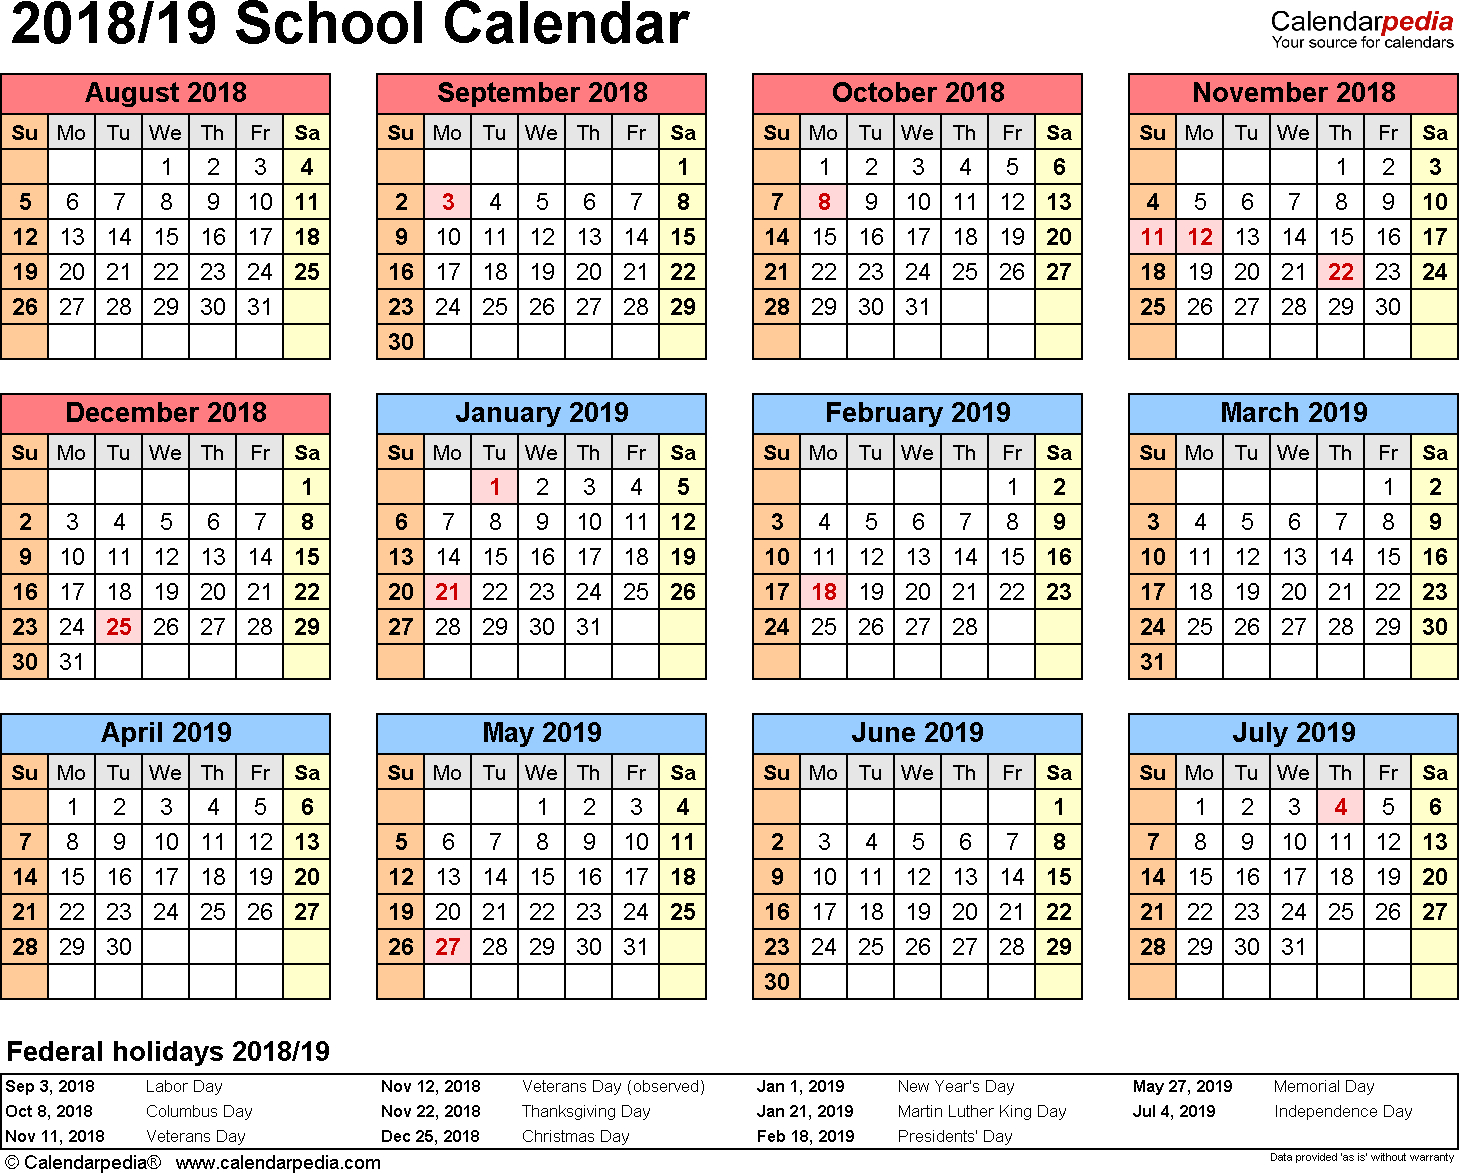 School Calendars 2018/2019 As Free Printable Word Templates within 18 School Calendar Template